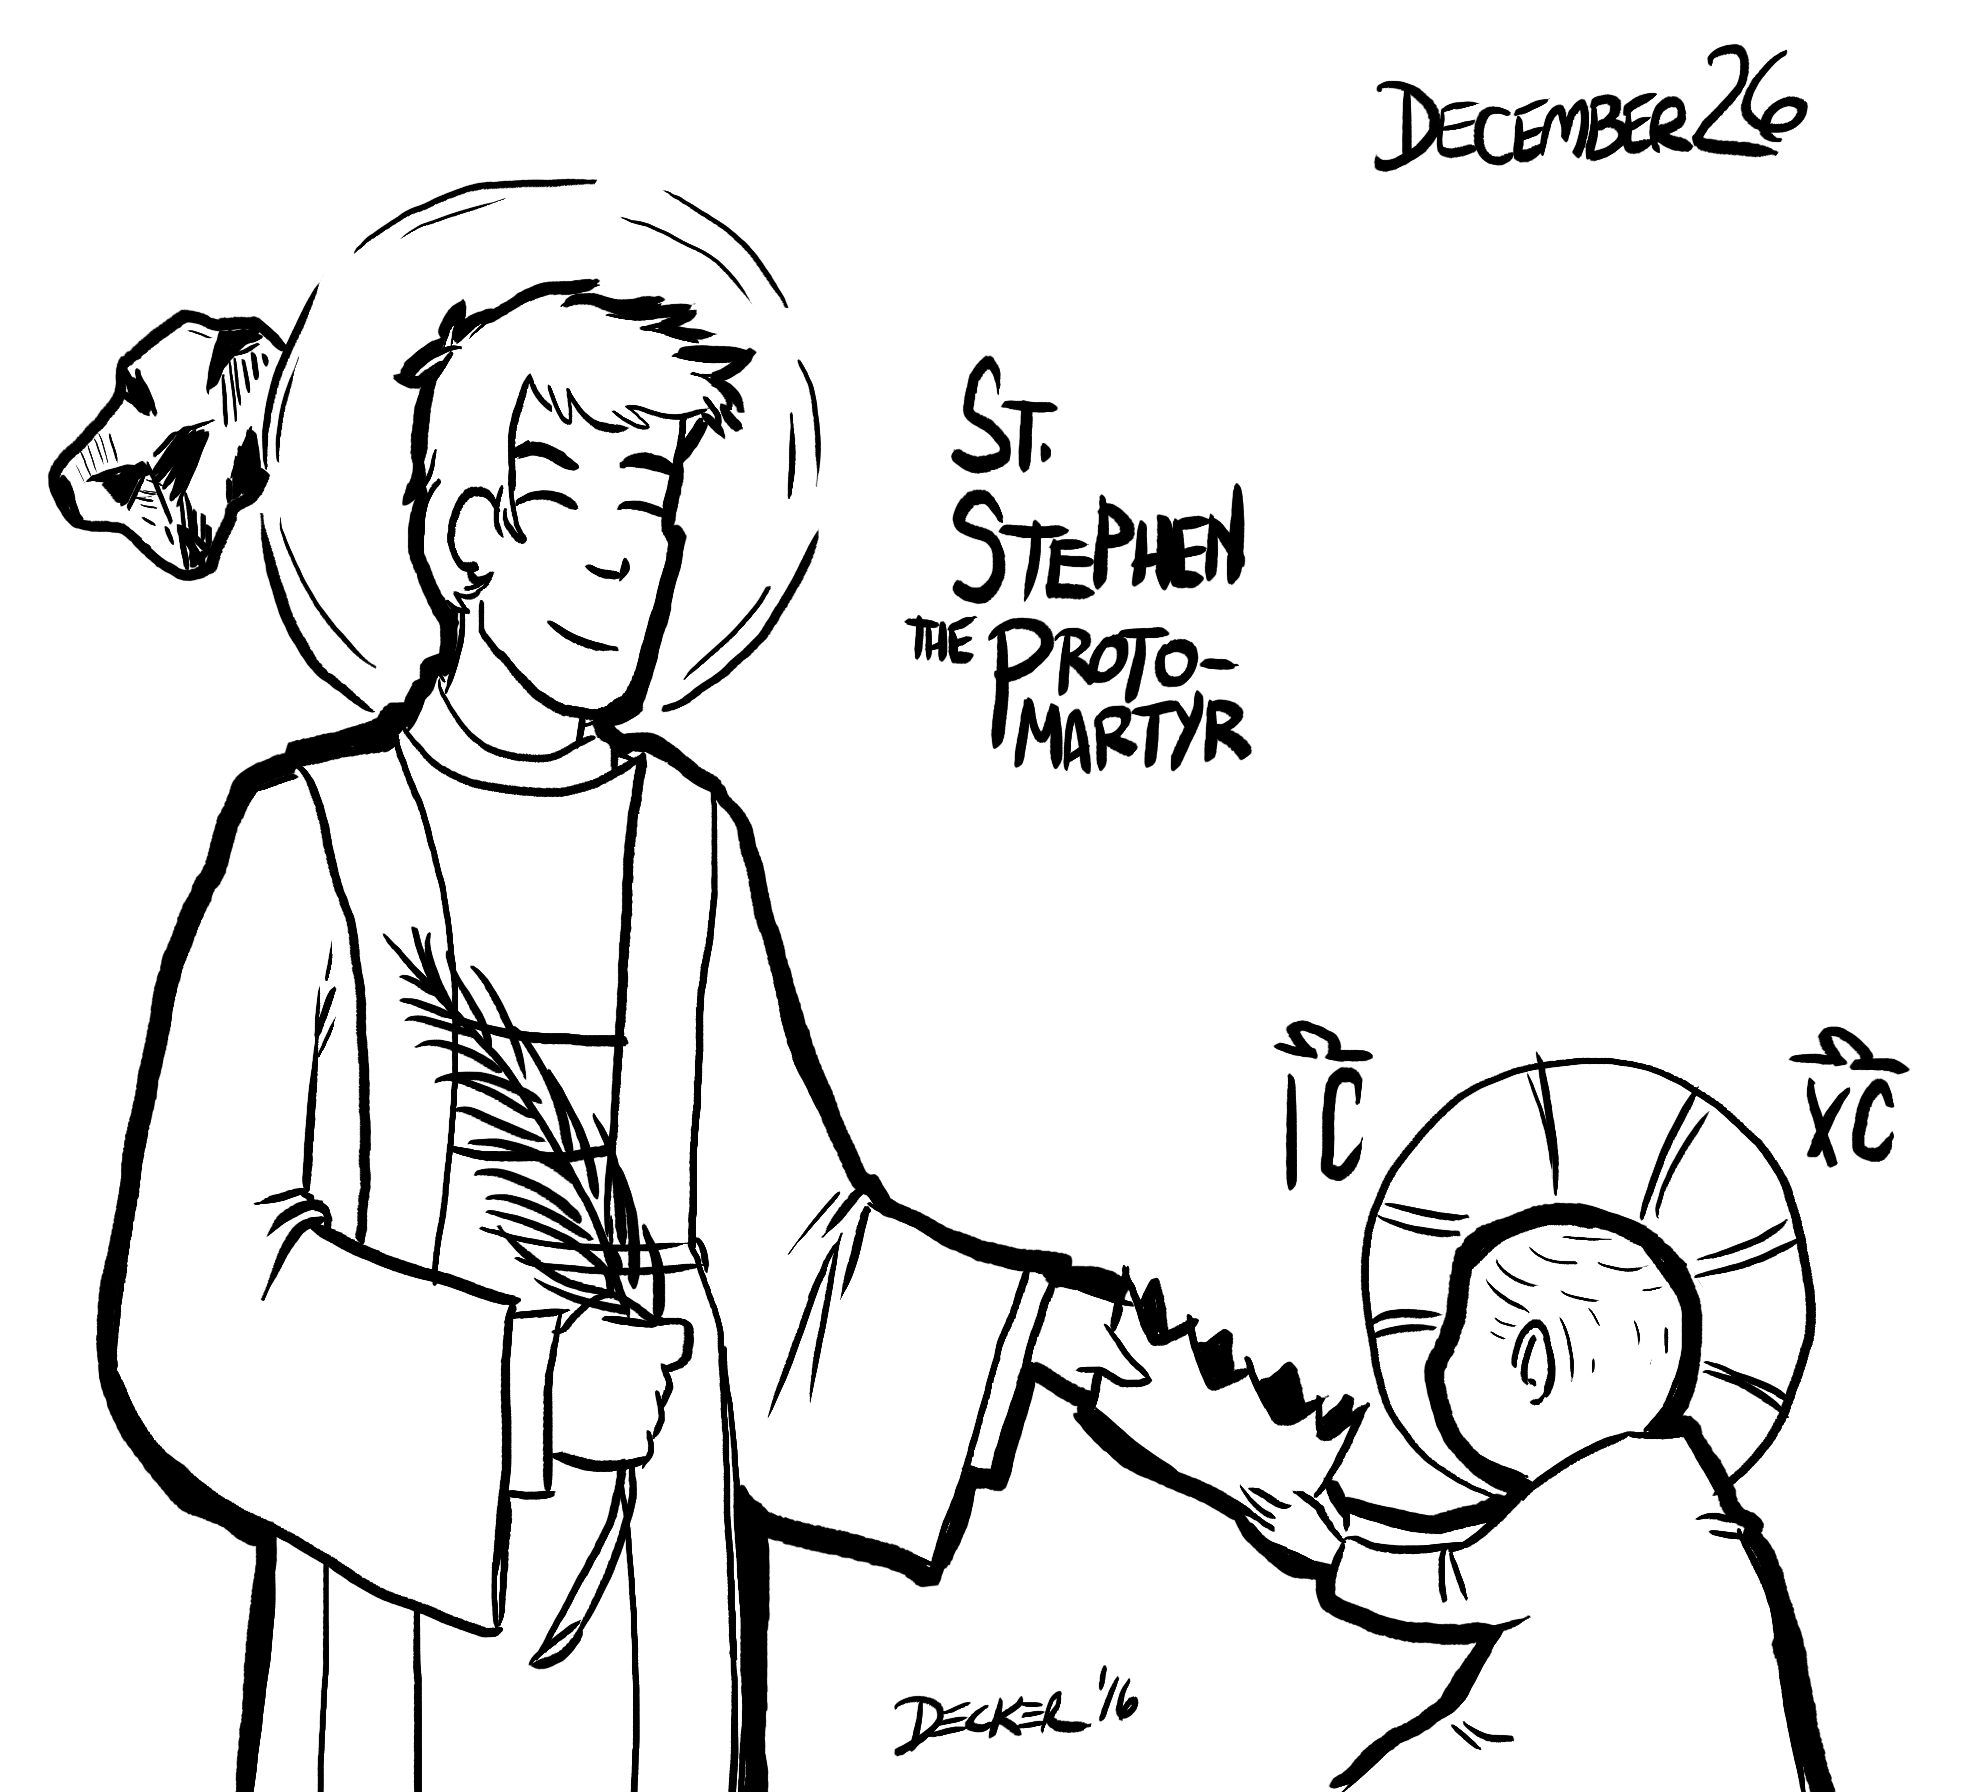 St. Stephen the Martyr